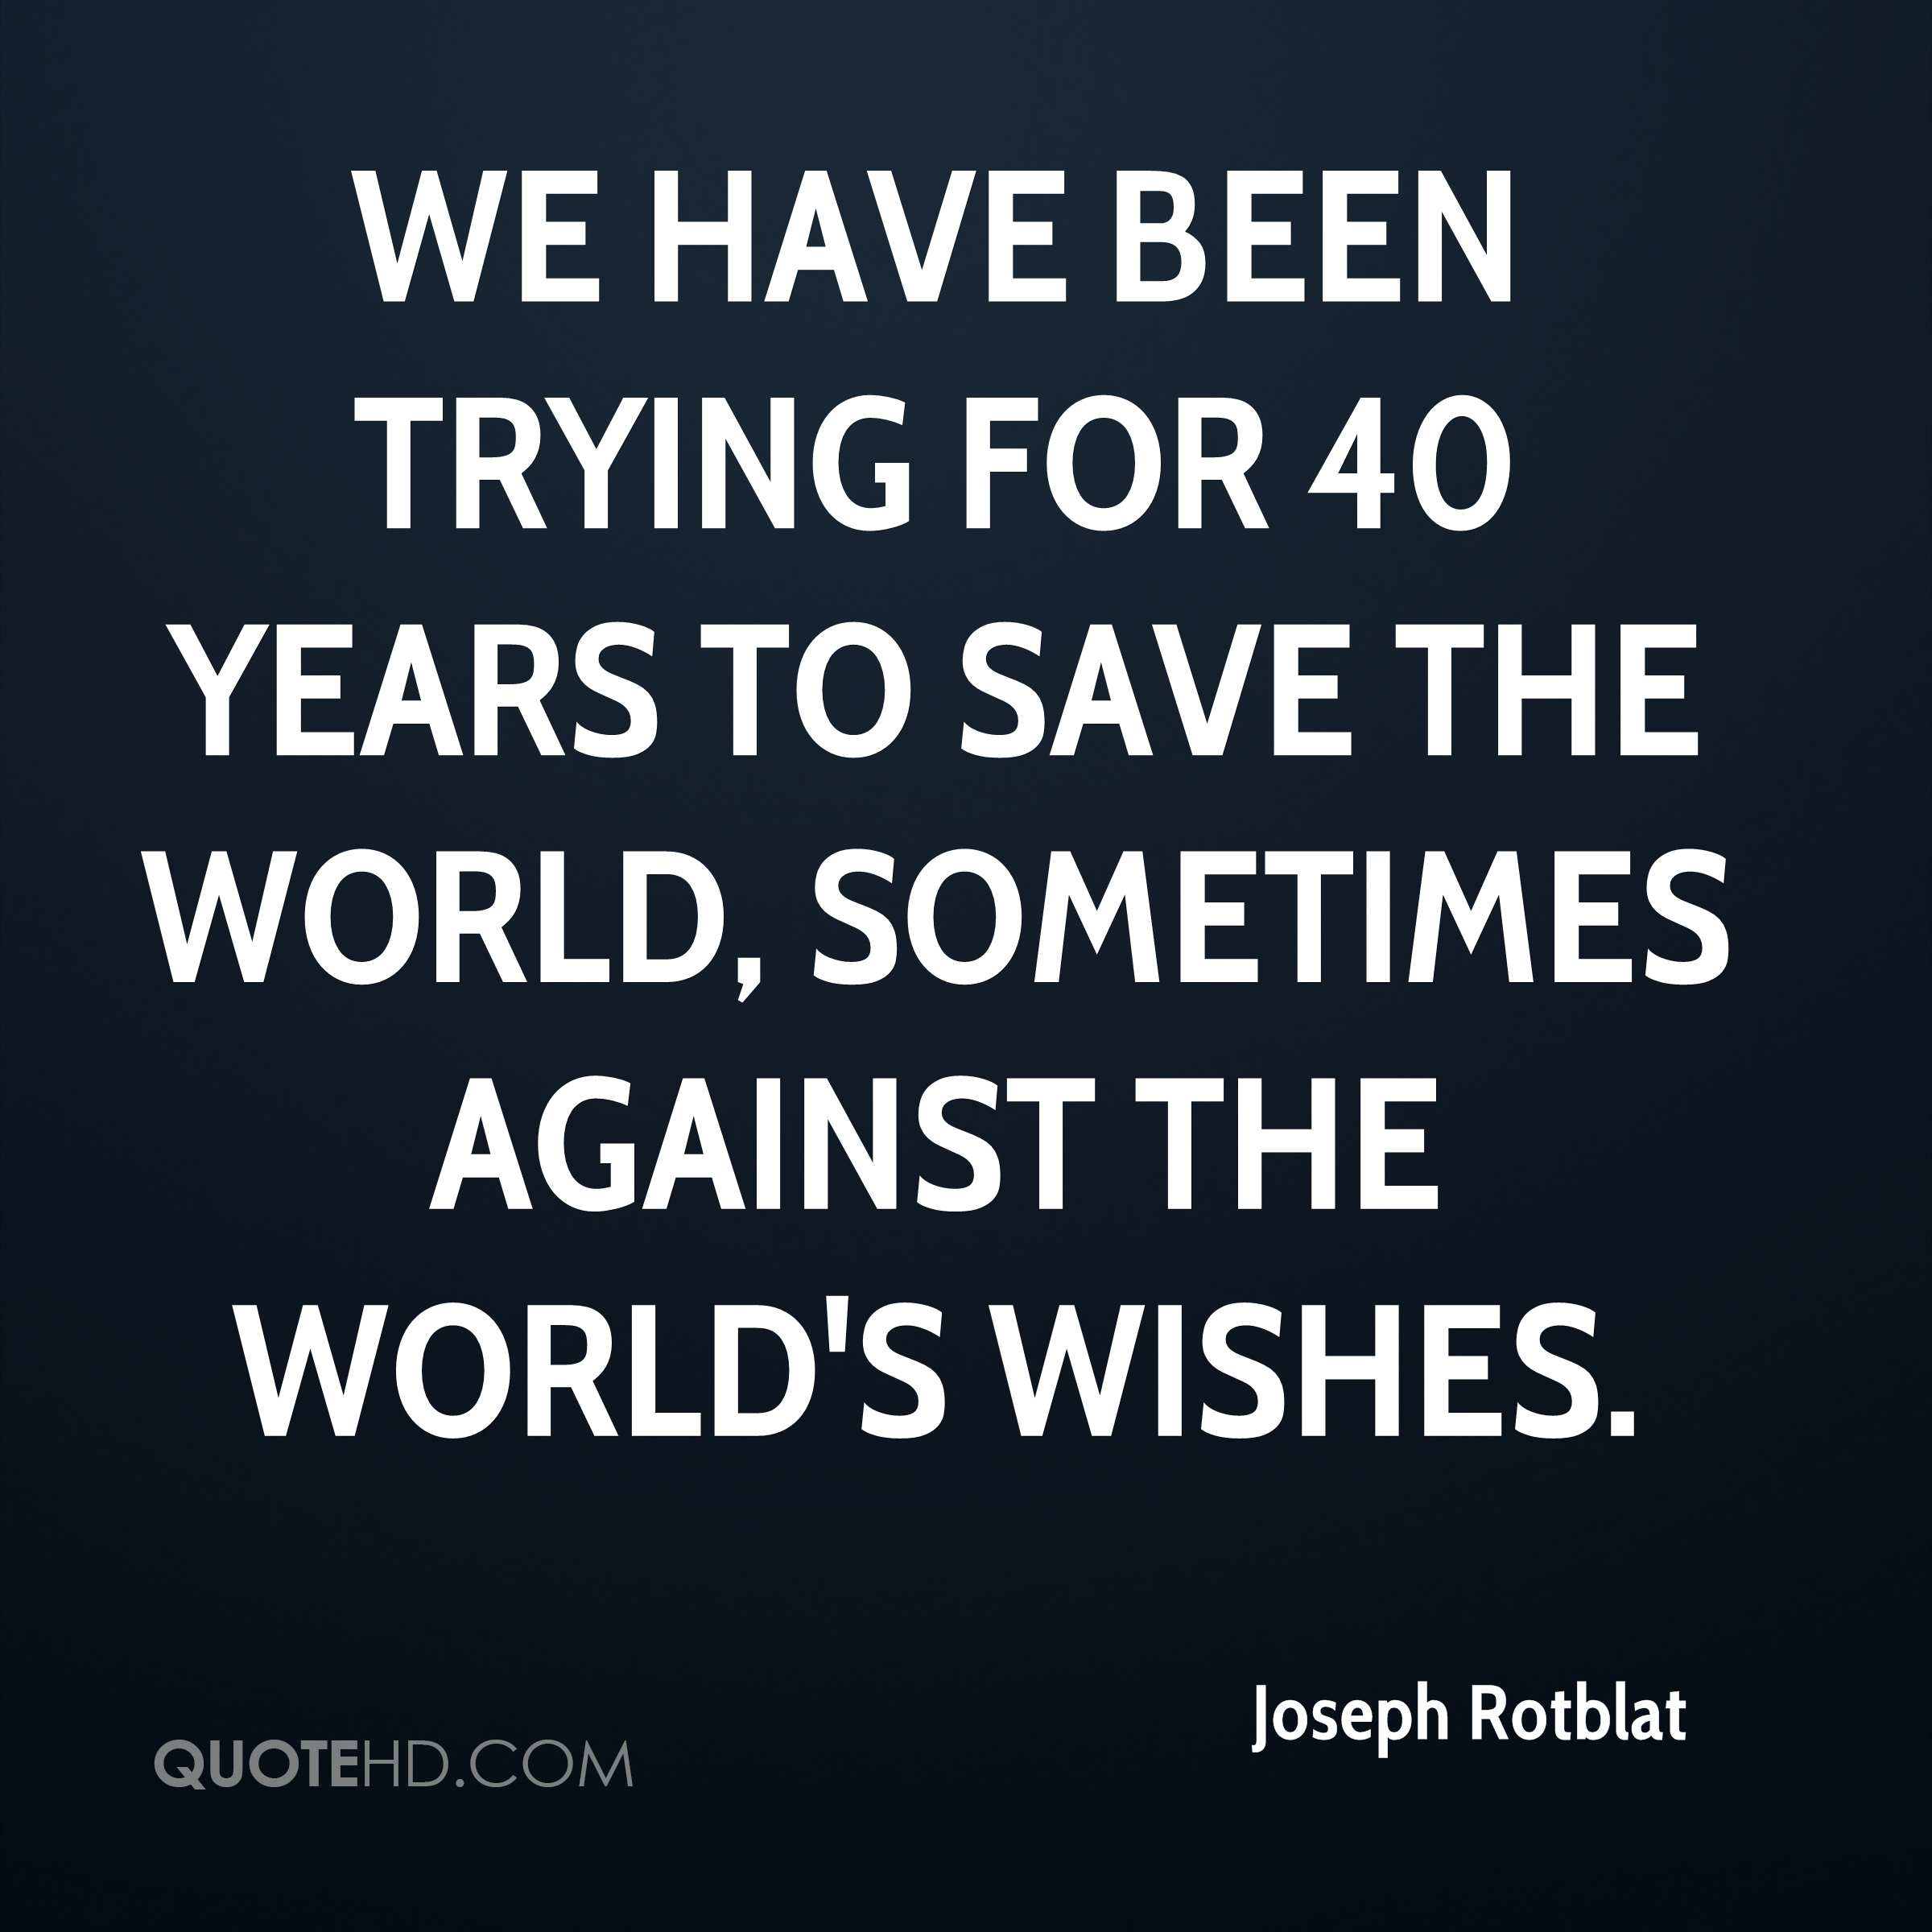 We have been trying for 40 years to save the world, sometimes against the world's wishes.